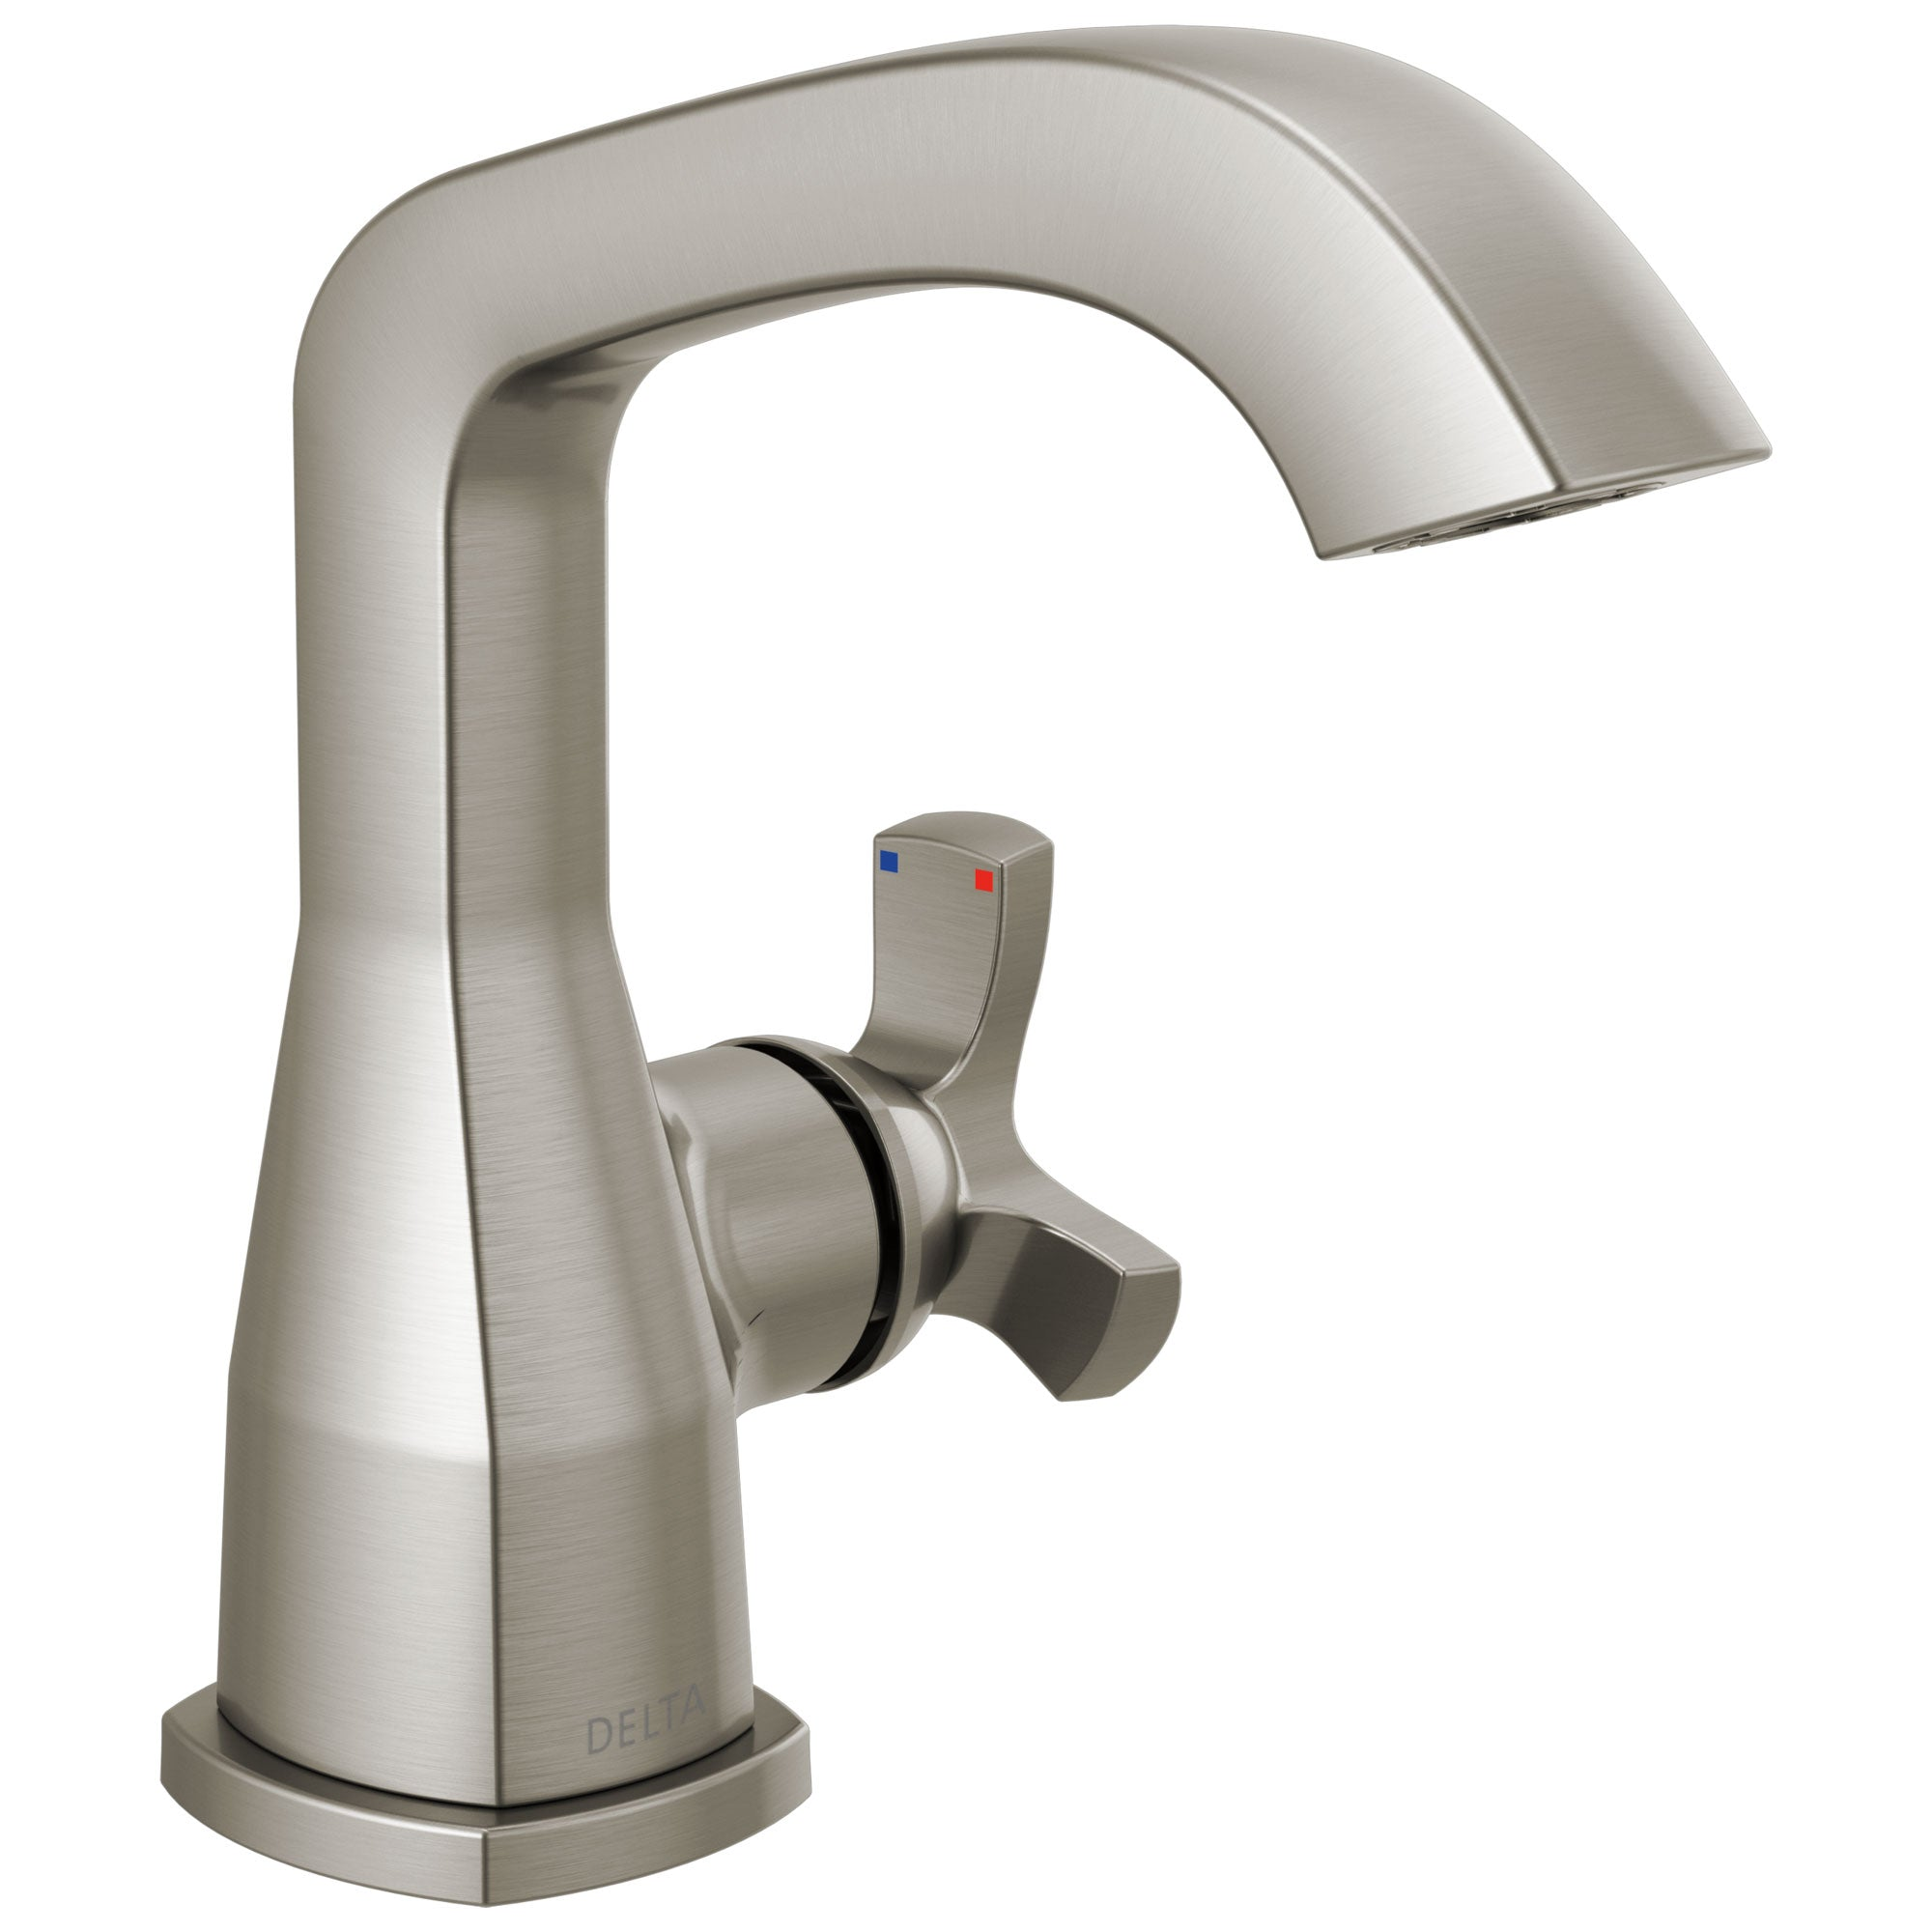 Delta Stryke Stainless Steel Finish Single Hole Bathroom Sink Faucet Includes Helo Cross Handle and Matching Drain D3598V